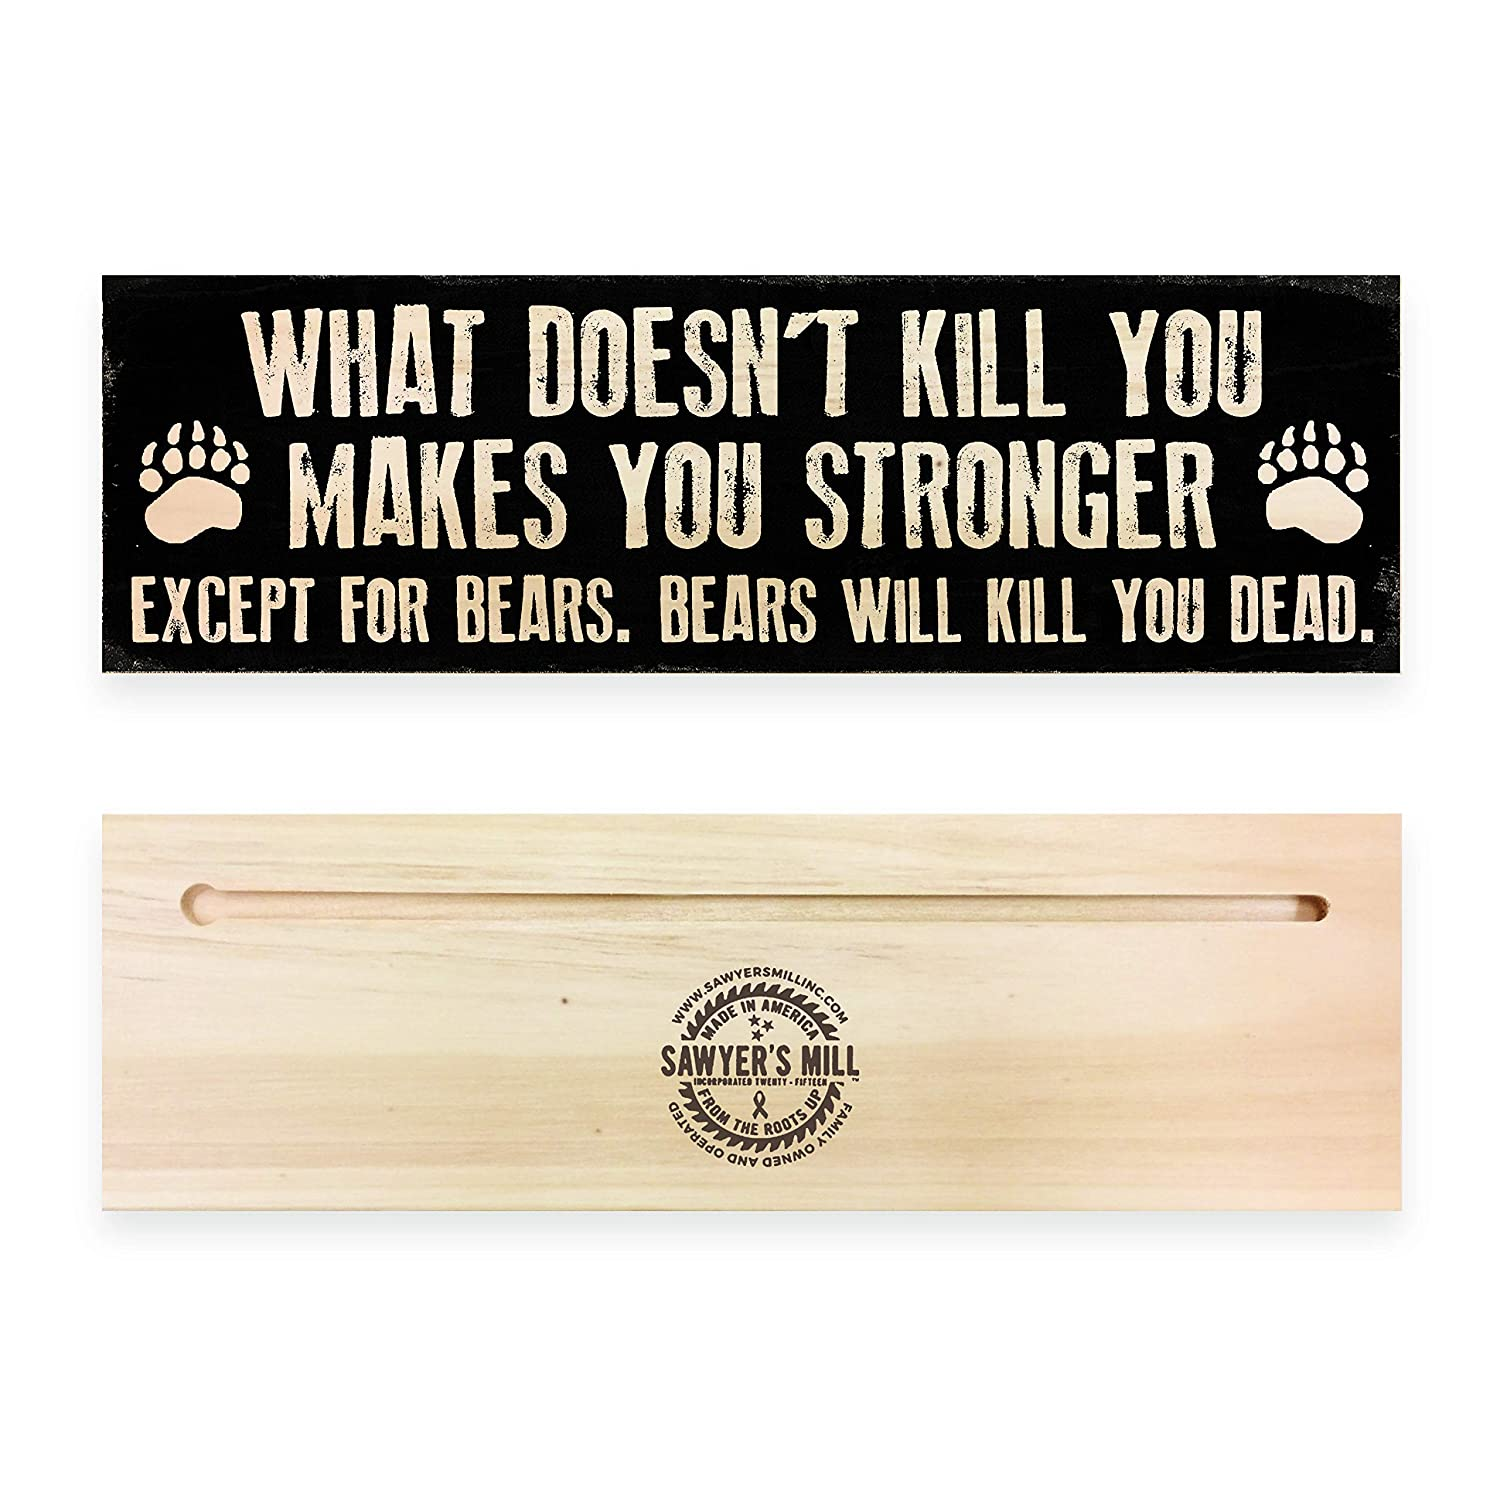 Except For Bears Bears Will Kill You Dead Wood Block Sign What Doesnt Kill You Makes You Stronger TN Handmade in Nashville